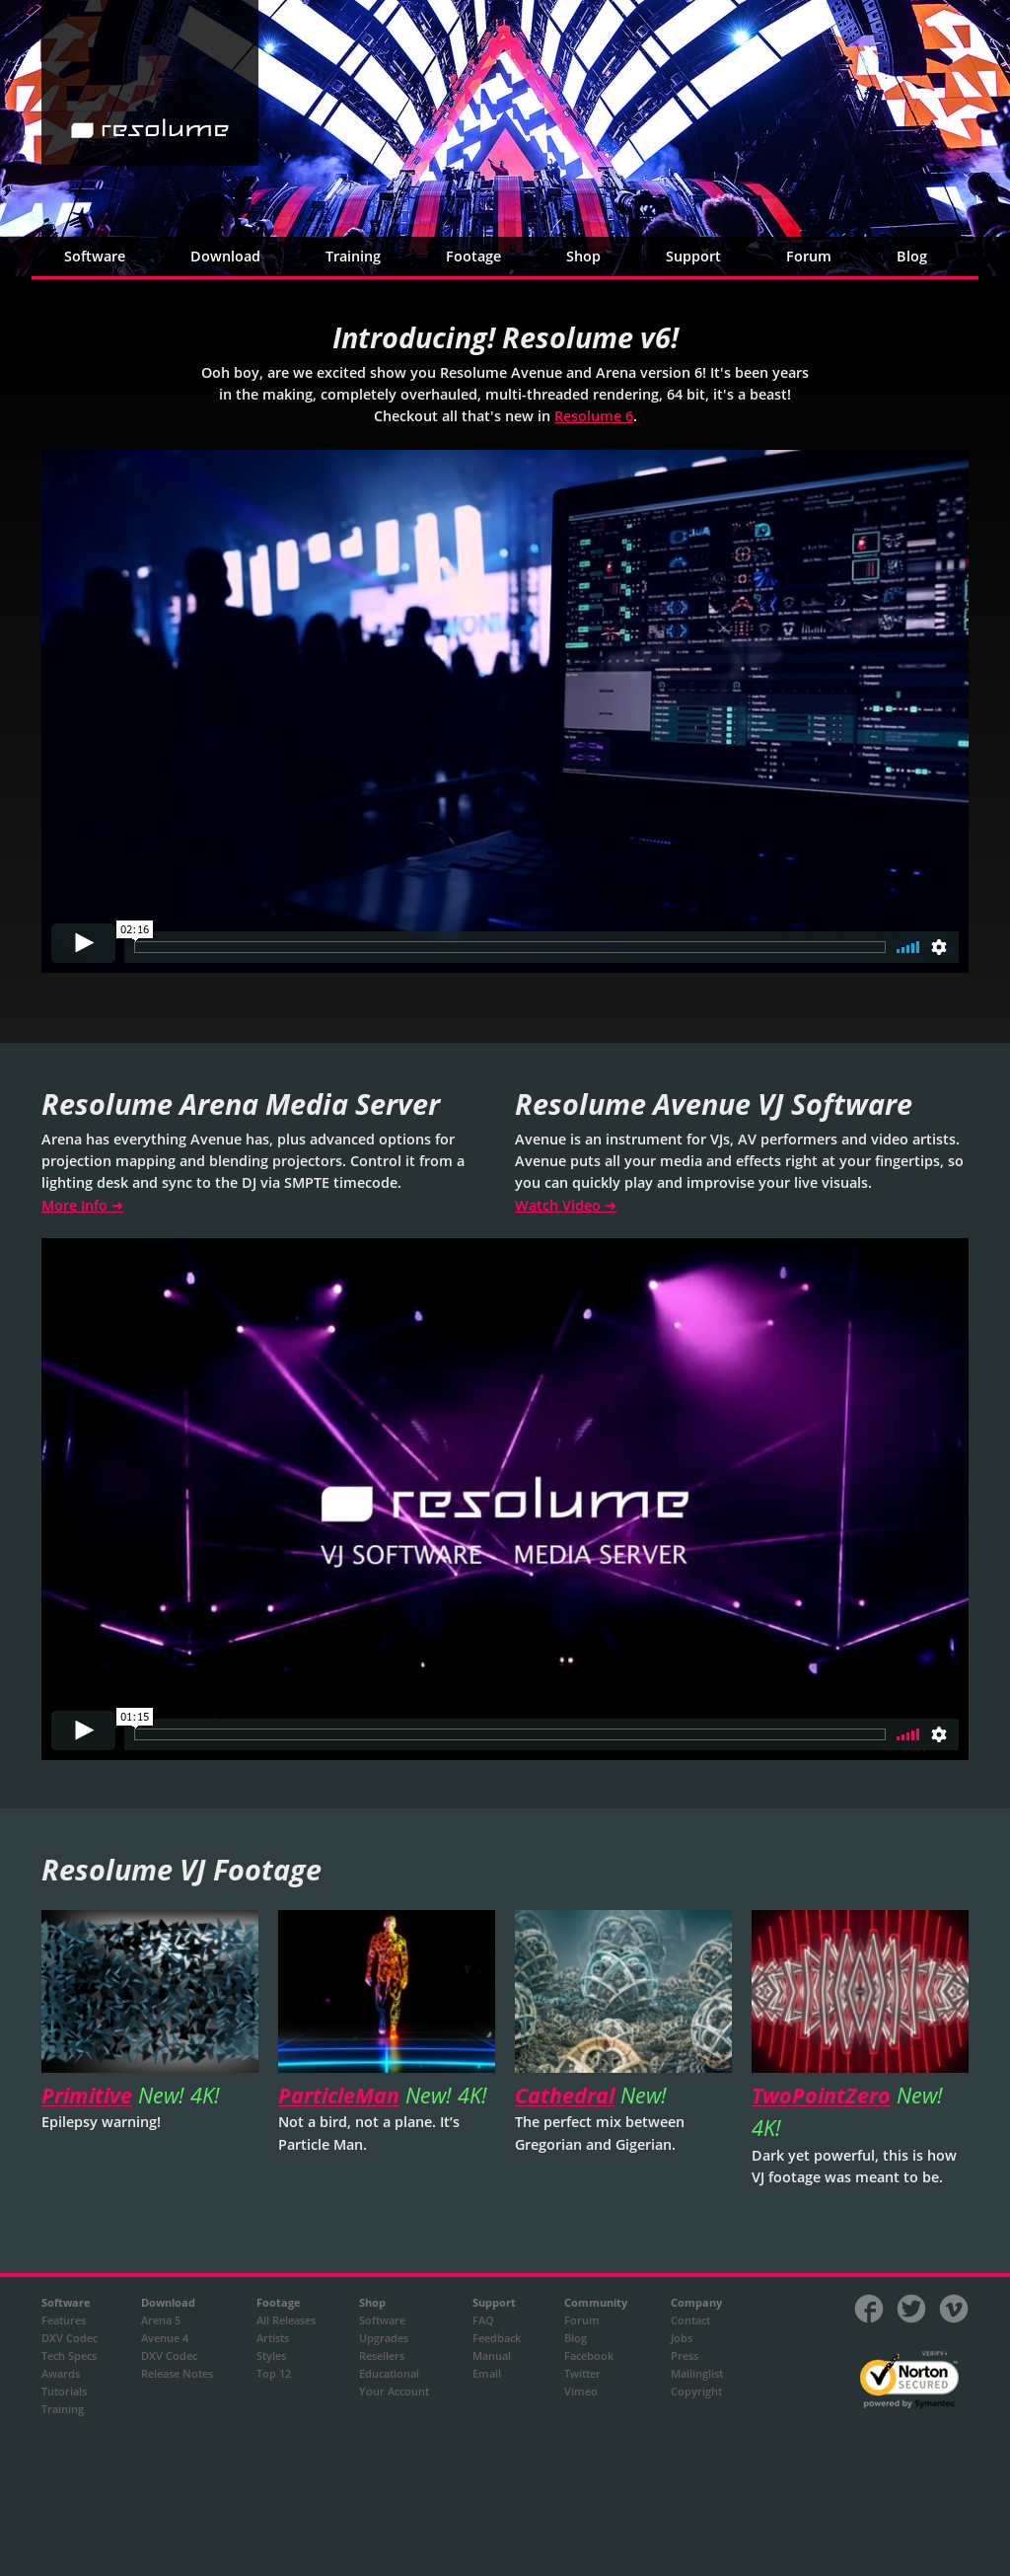 Resolume Vj Software Competitors, Revenue and Employees